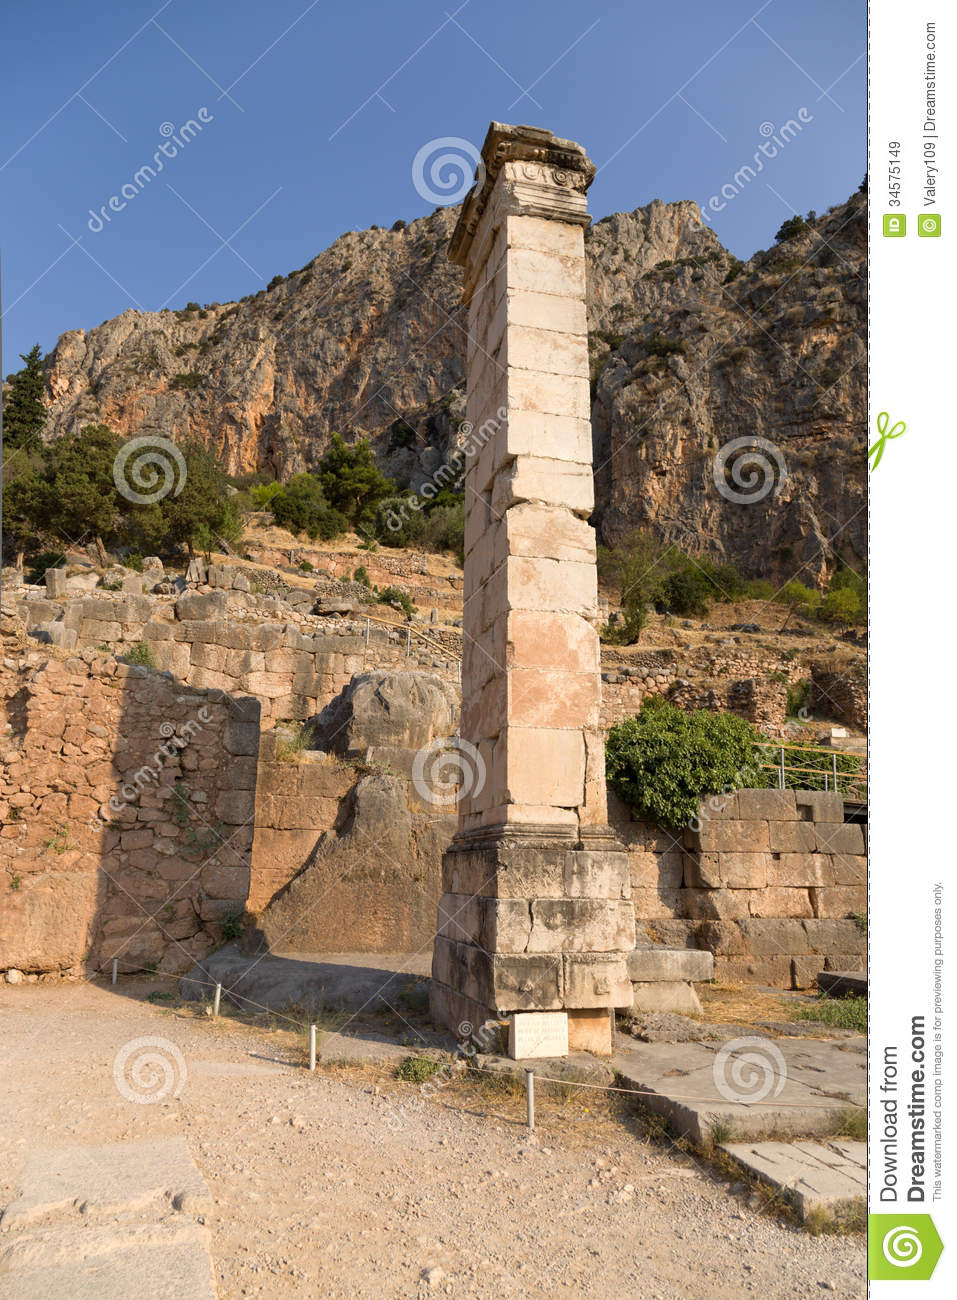 Greece. Delphi. Ancient Ruins Royalty Free Stock Images ...